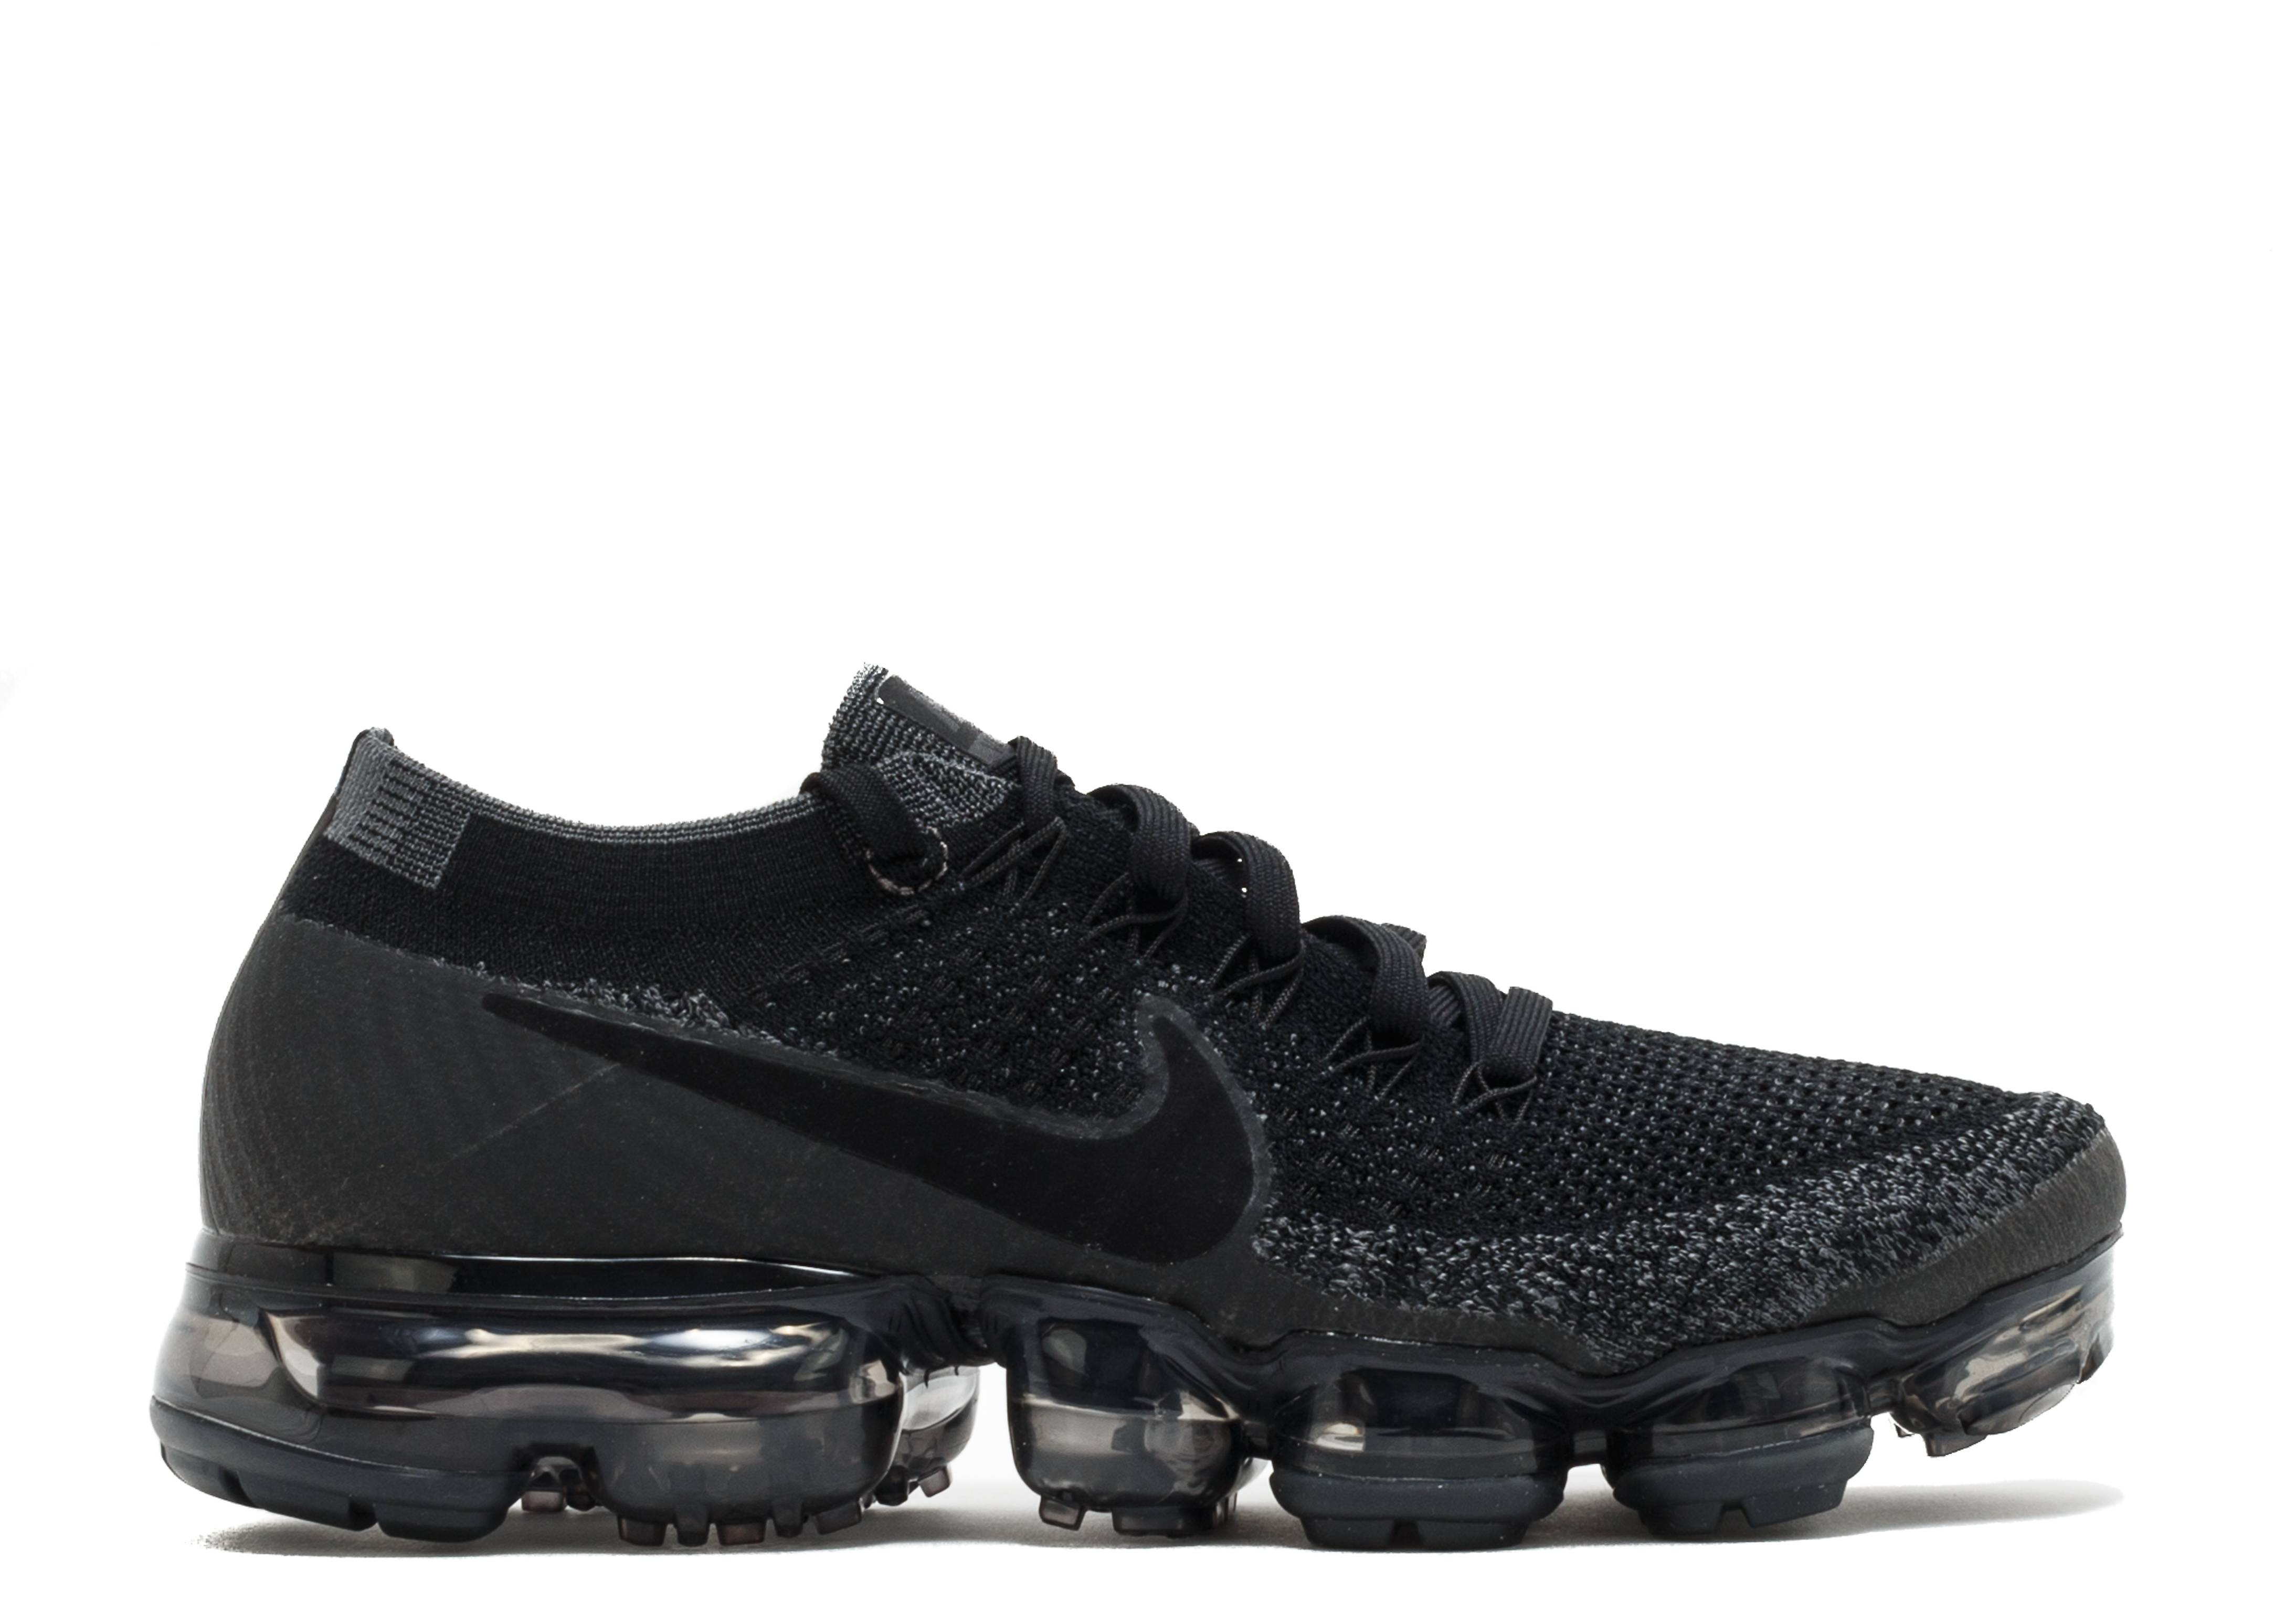 Nike Vapormax Off White Used Shoes